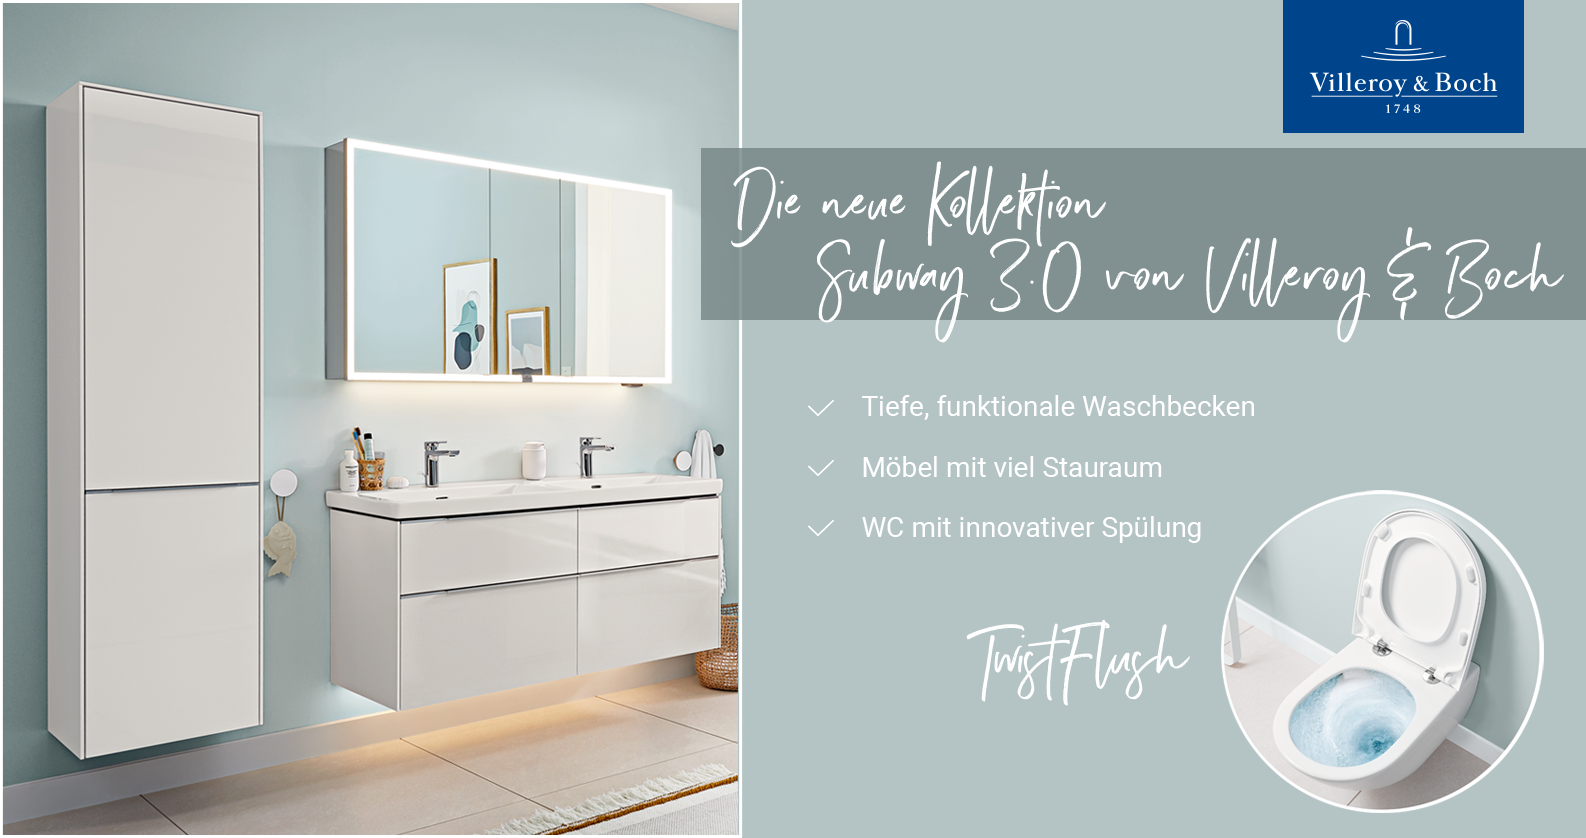 Villeroy & Boch - Subway 3.0 designed for life bei xTWOstore